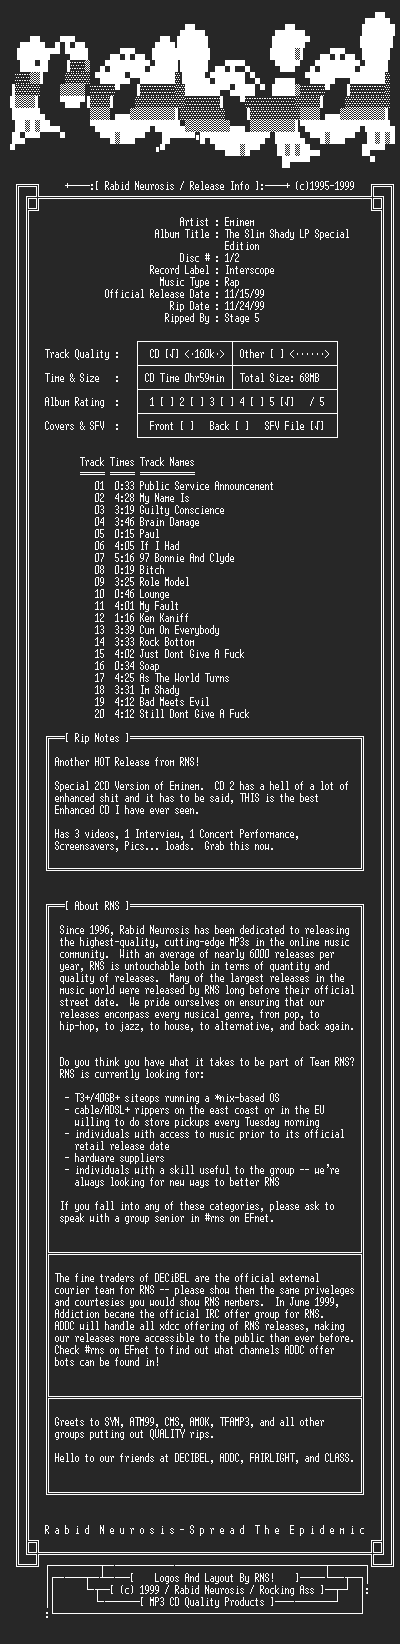 NFO file for Eminem-The_Slim_Shady_LP_Special_Edition-2CD-1999-RNS